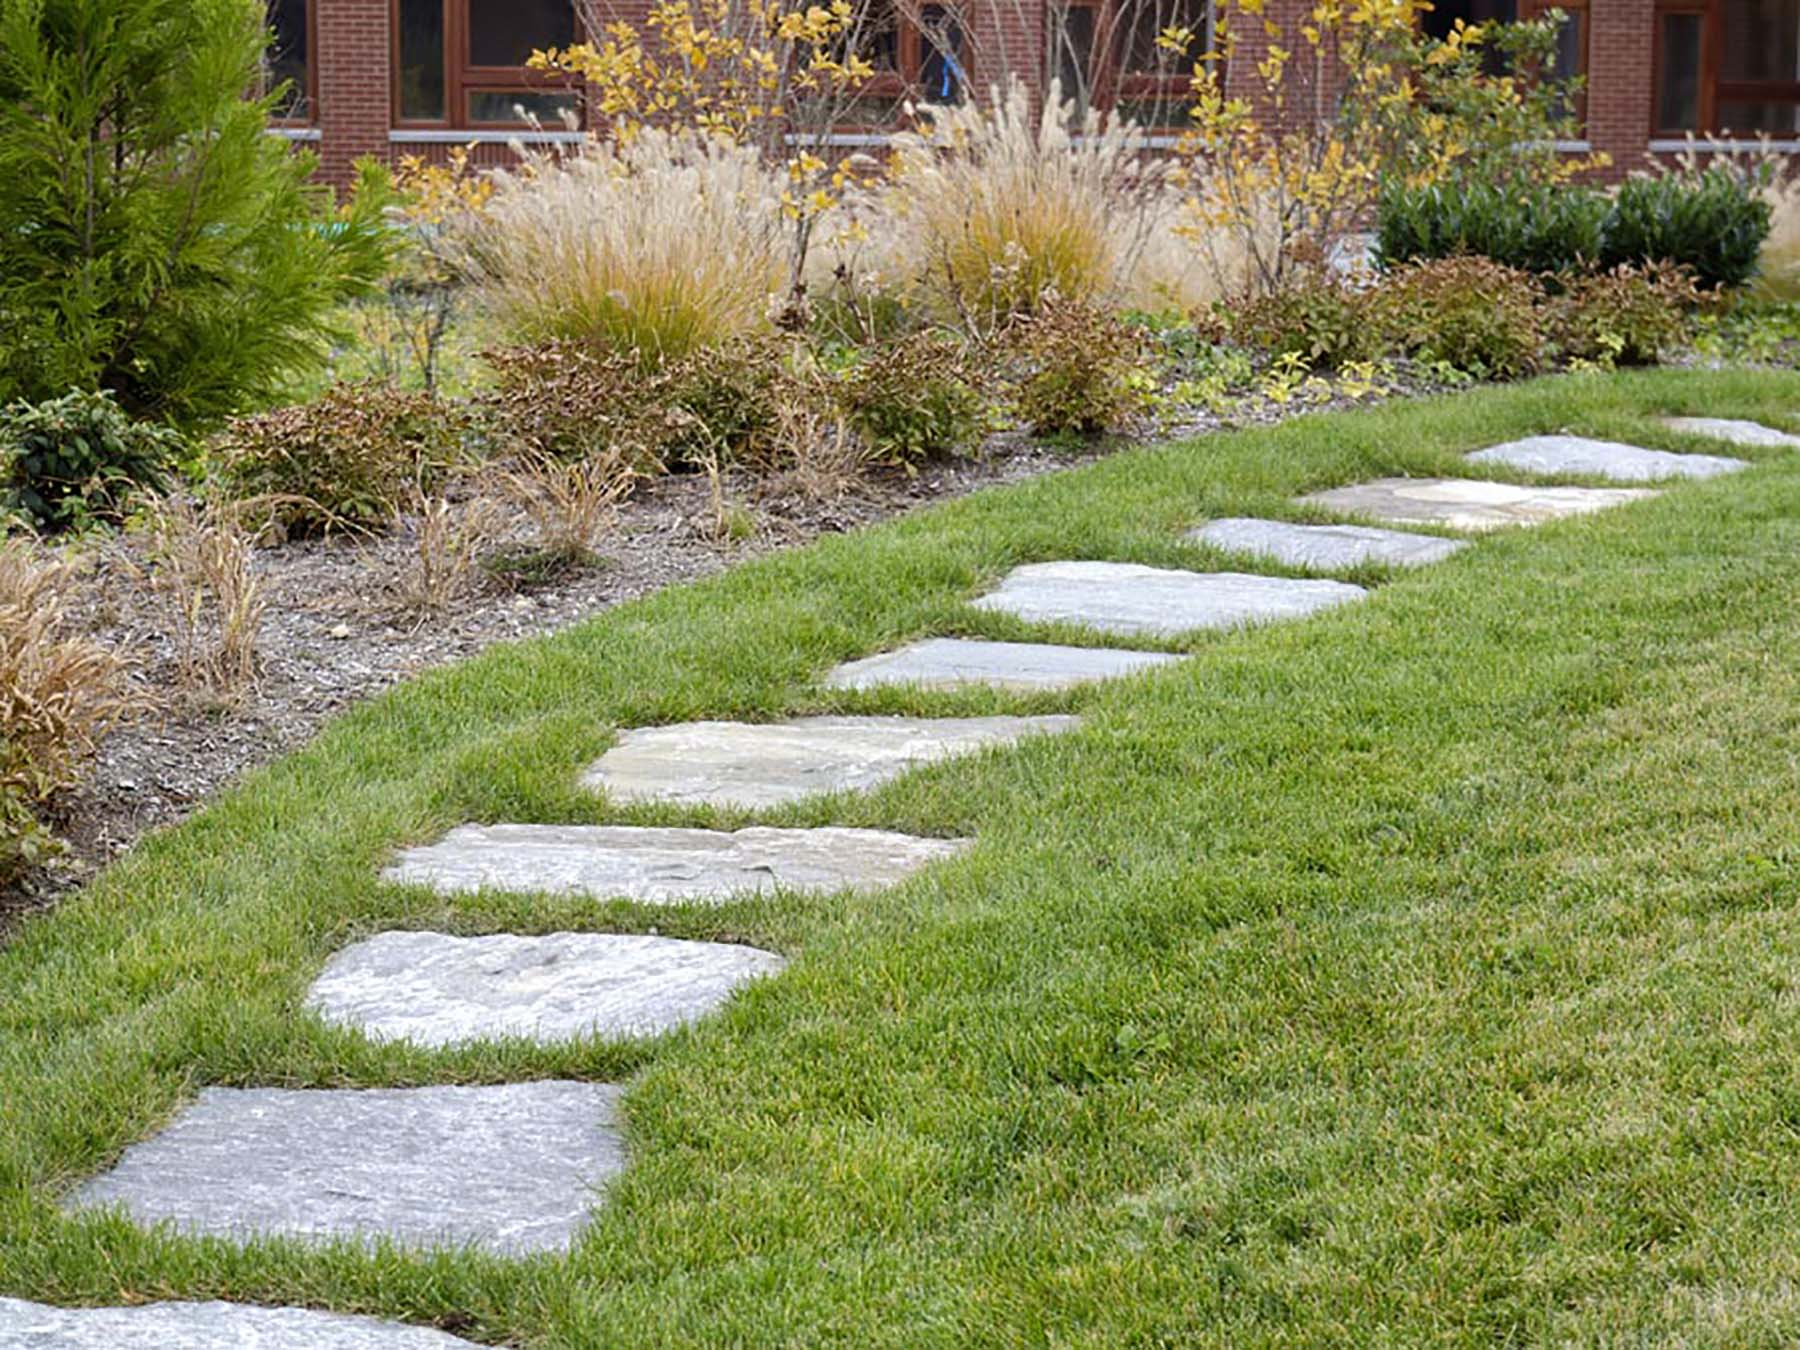 Ticonderoga Granite Flagging in lawn